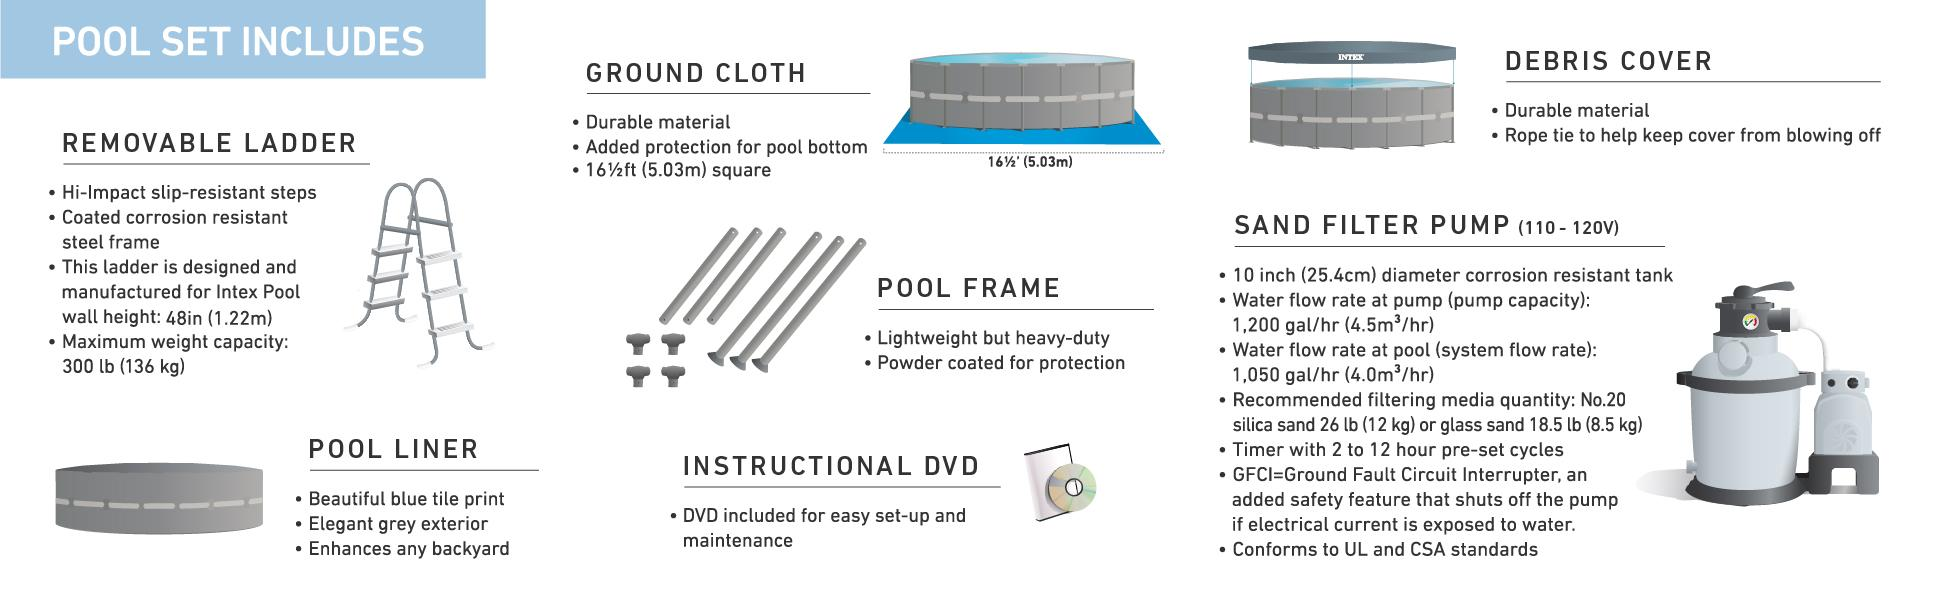 amazon com intex 16ft x 48in ultra frame pool set with sand